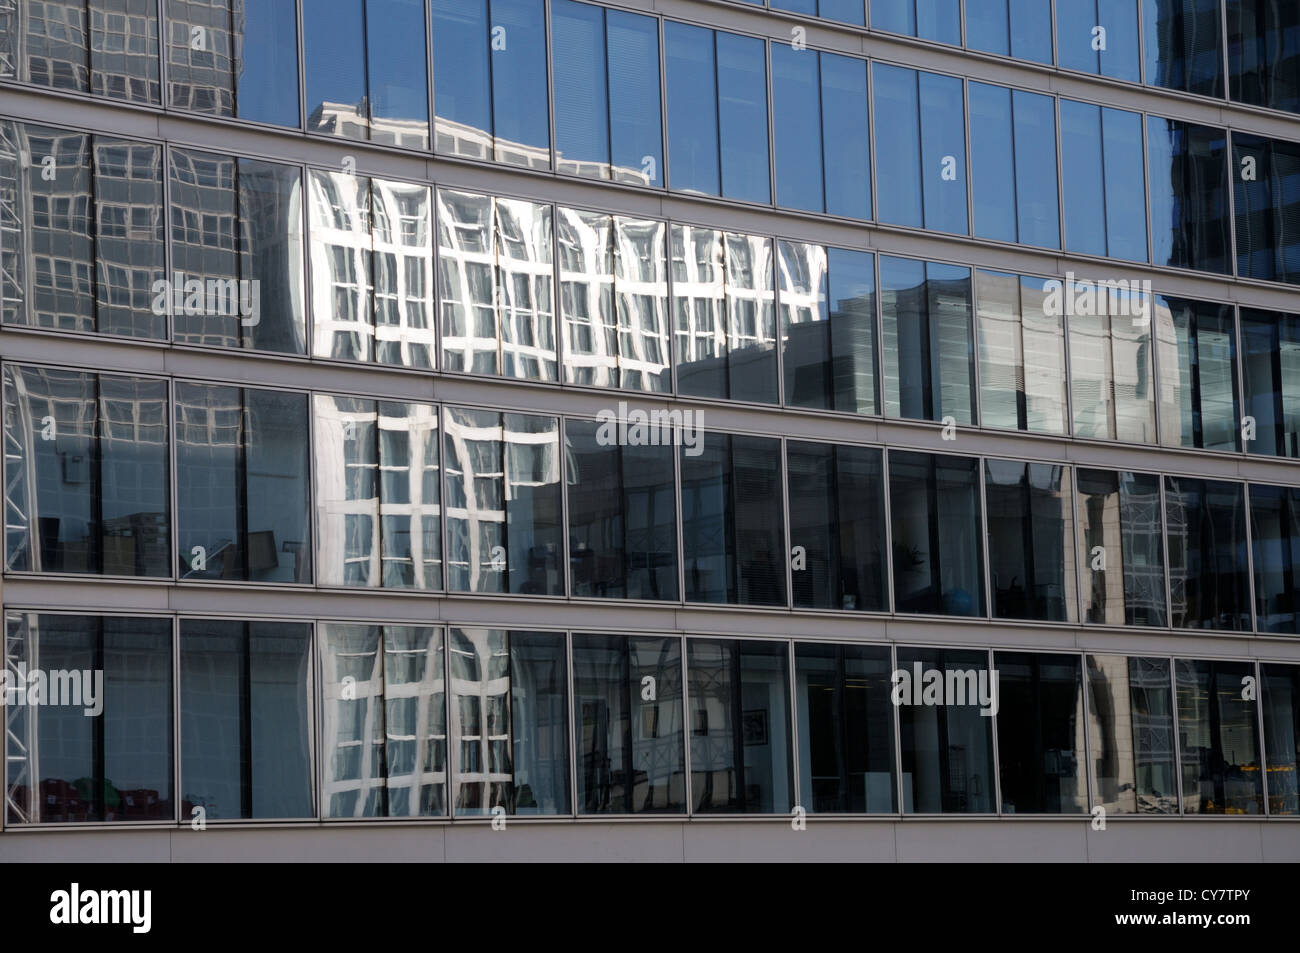 City Reflections - Stock Image